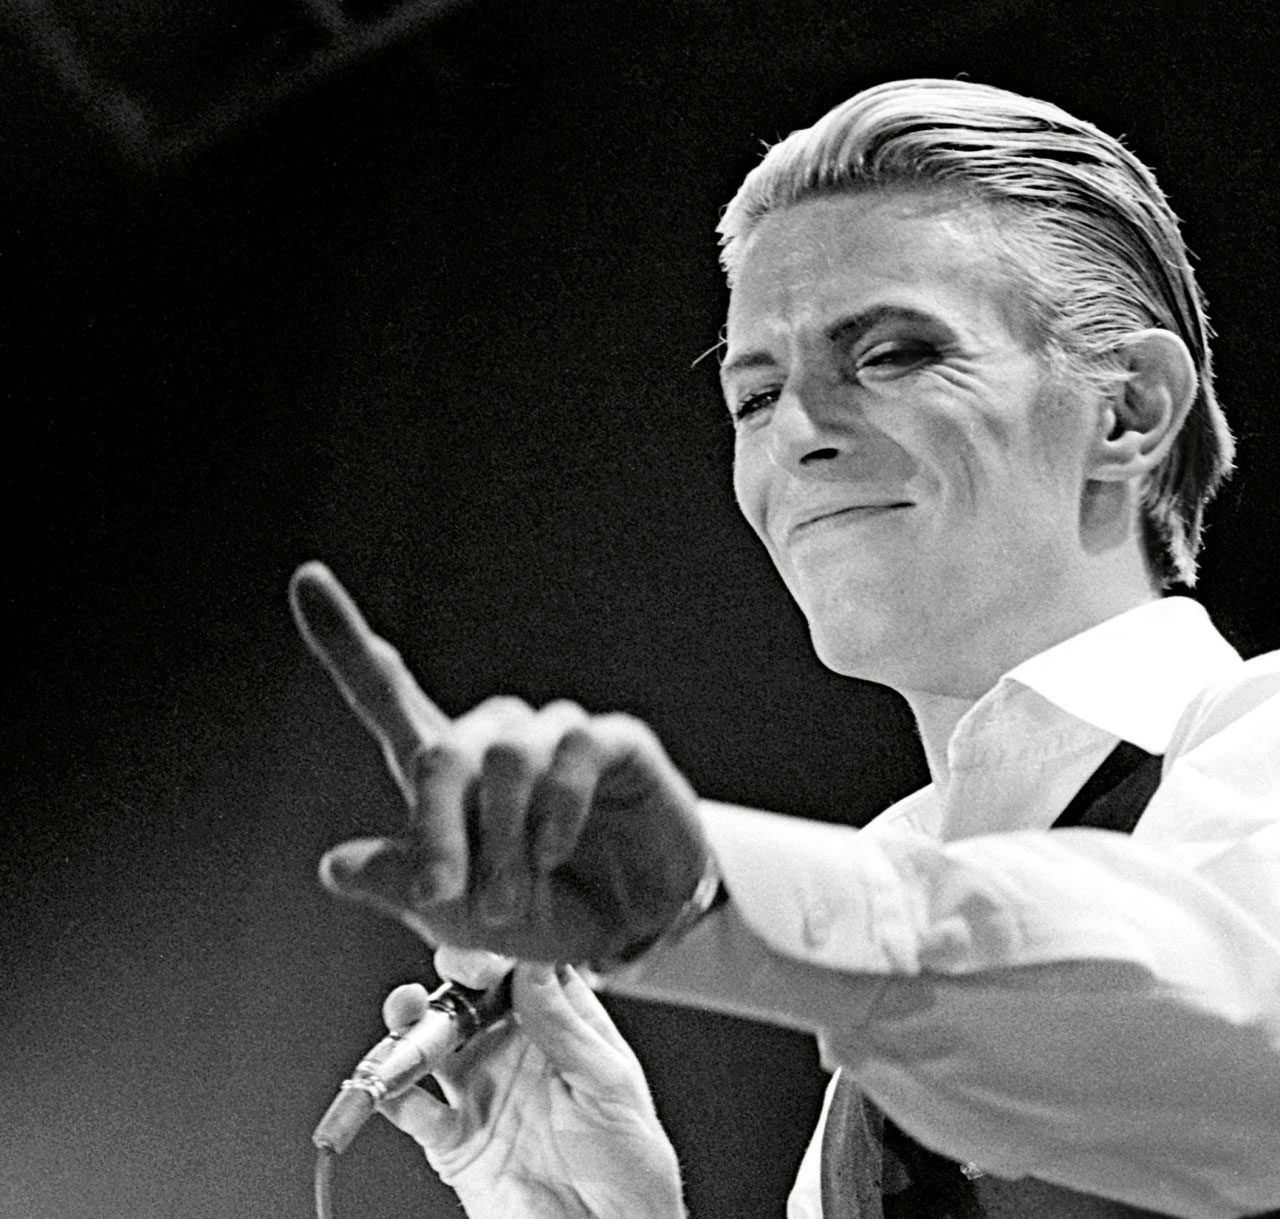 David Bowie: Icon Captures the Star Man's Unique Image